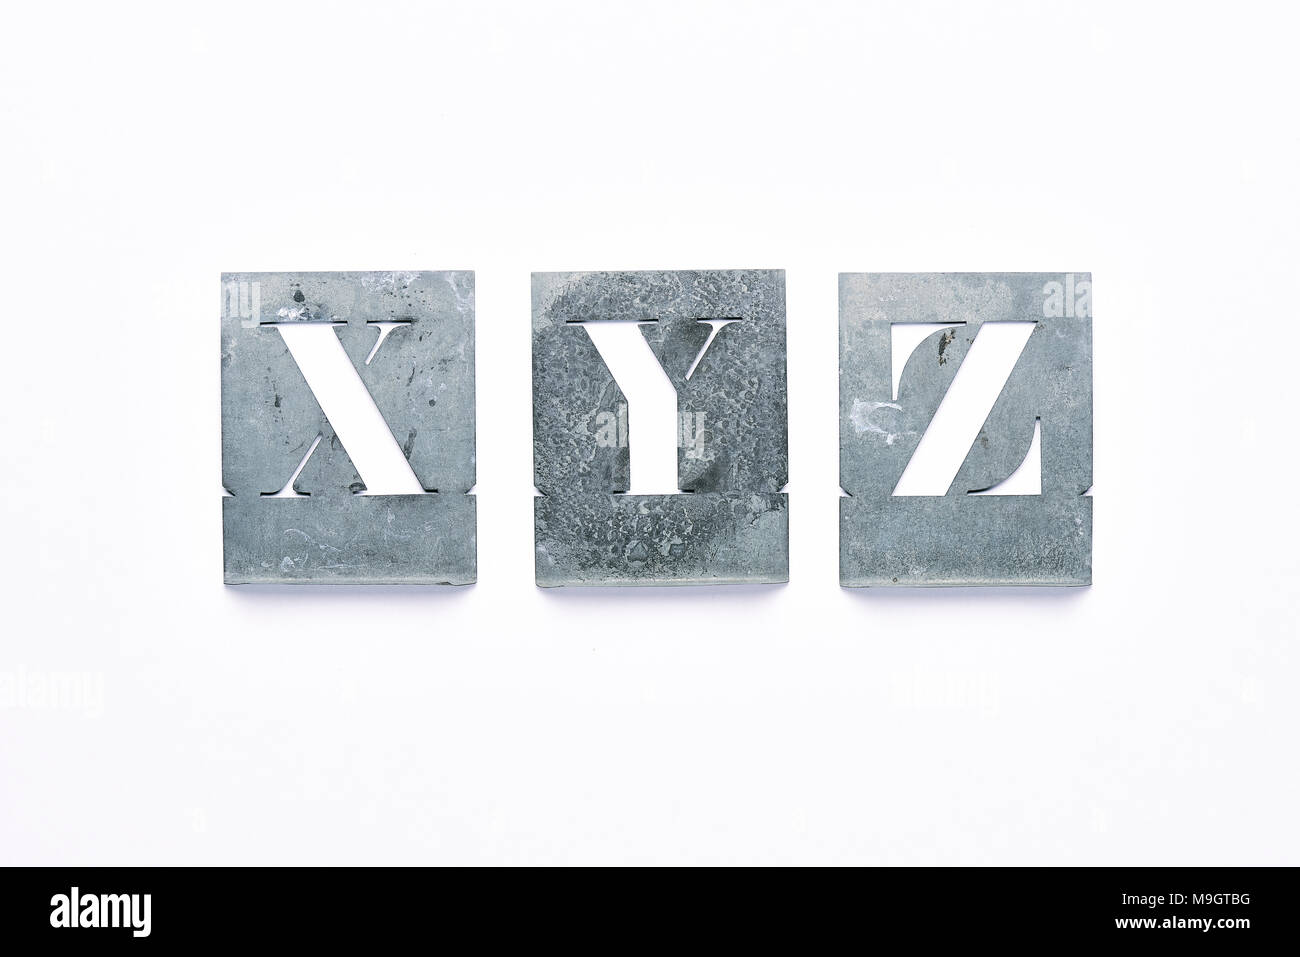 Metal stencil letters X, Y, Z on a white background - Stock Image